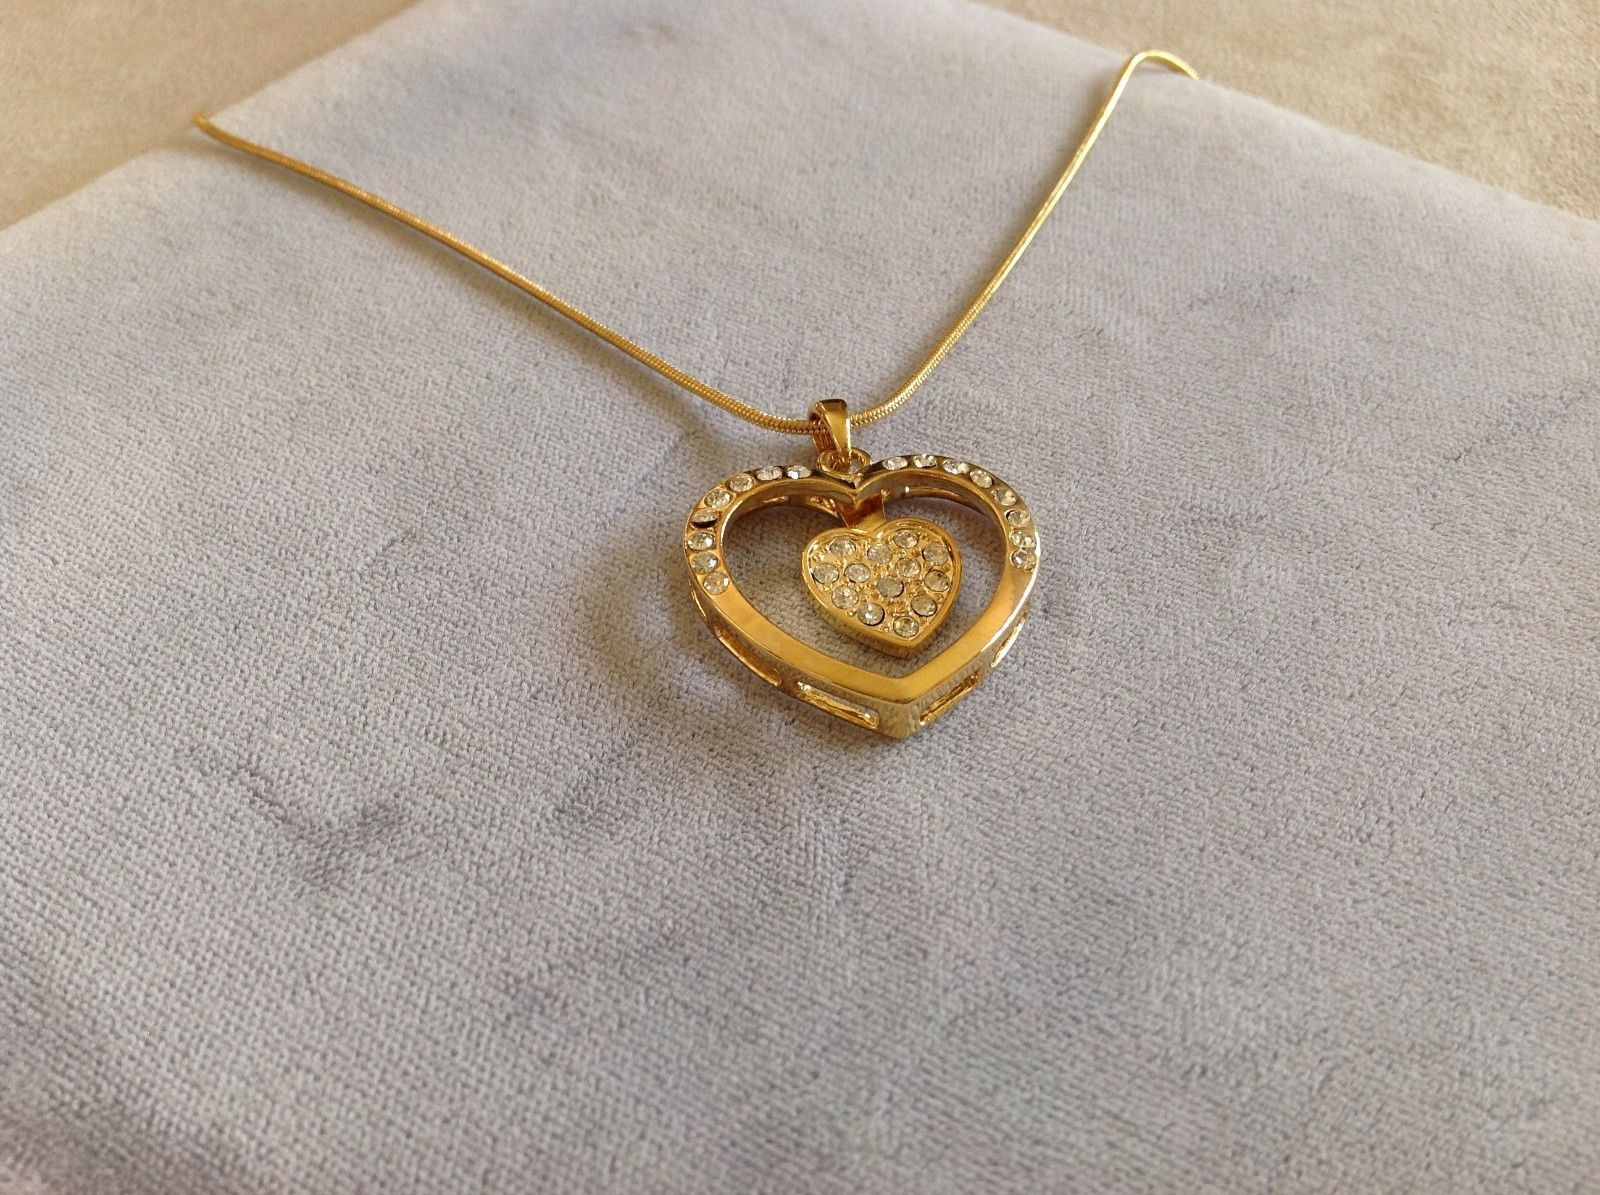 New Allure Gold Toned Necklace With Heart Shaped Pendant Decorated With Gemstone